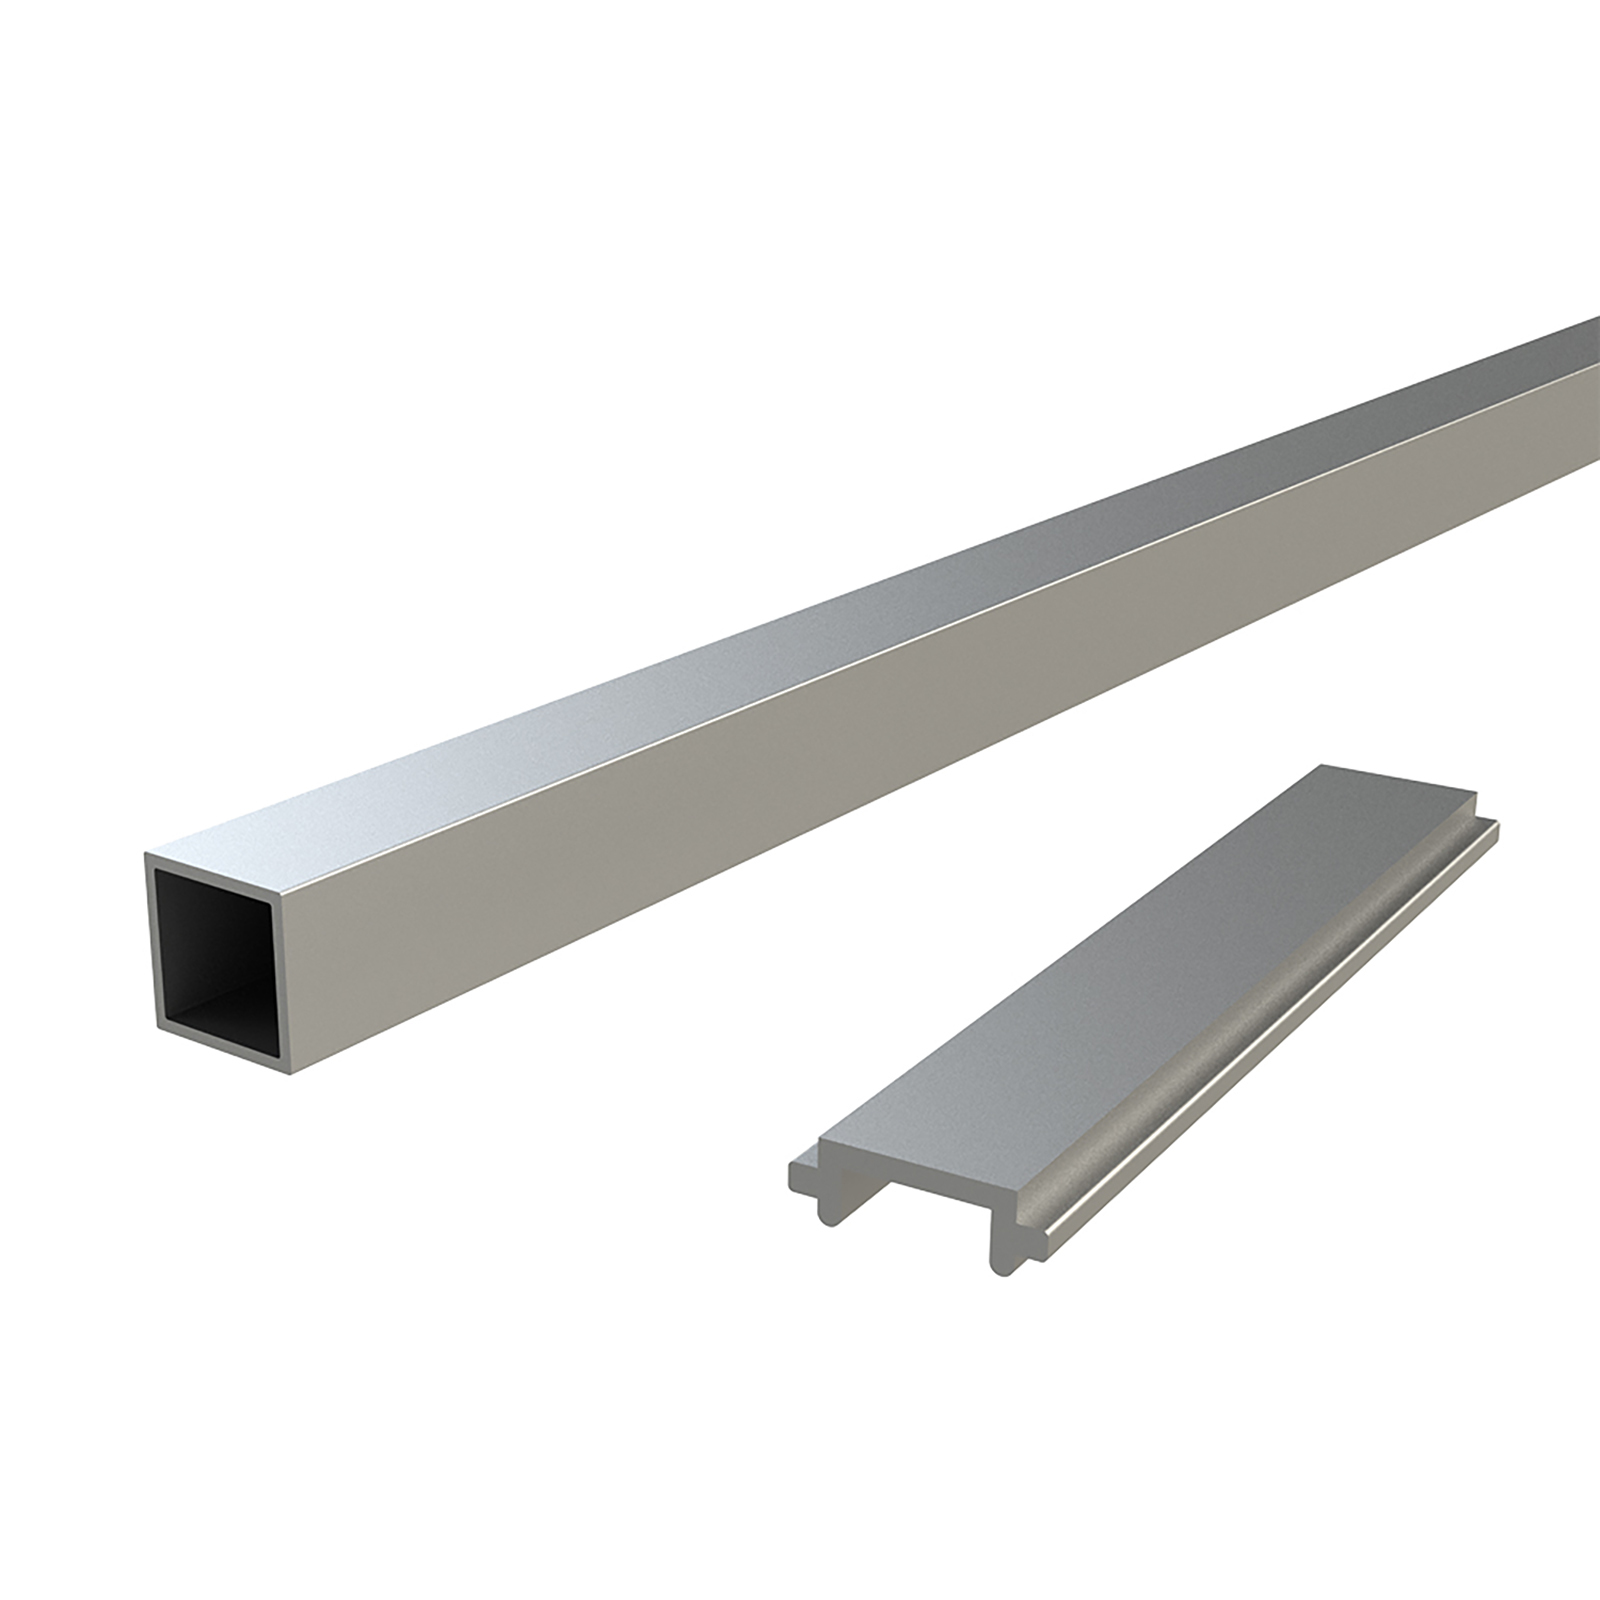 Peak Products 1800mm Silver Aluminium Balustrade Standard Baluster And Spacer Kit